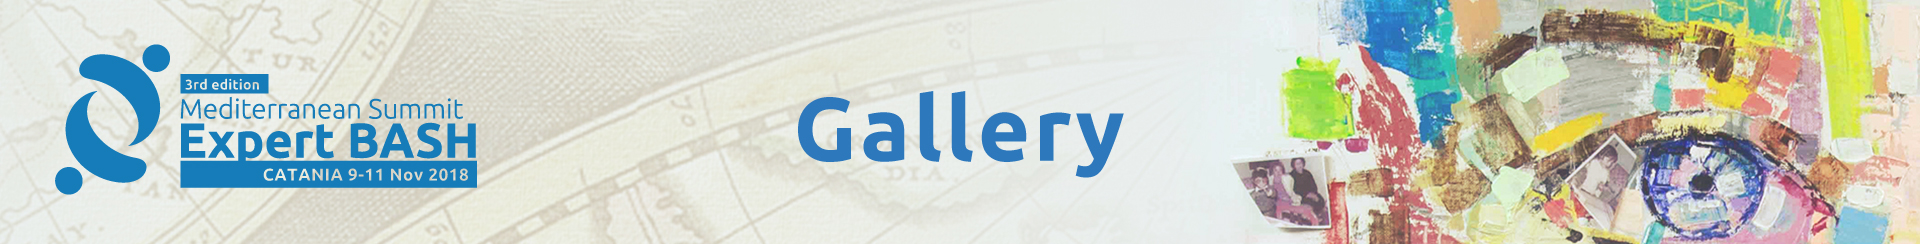 gallery-title